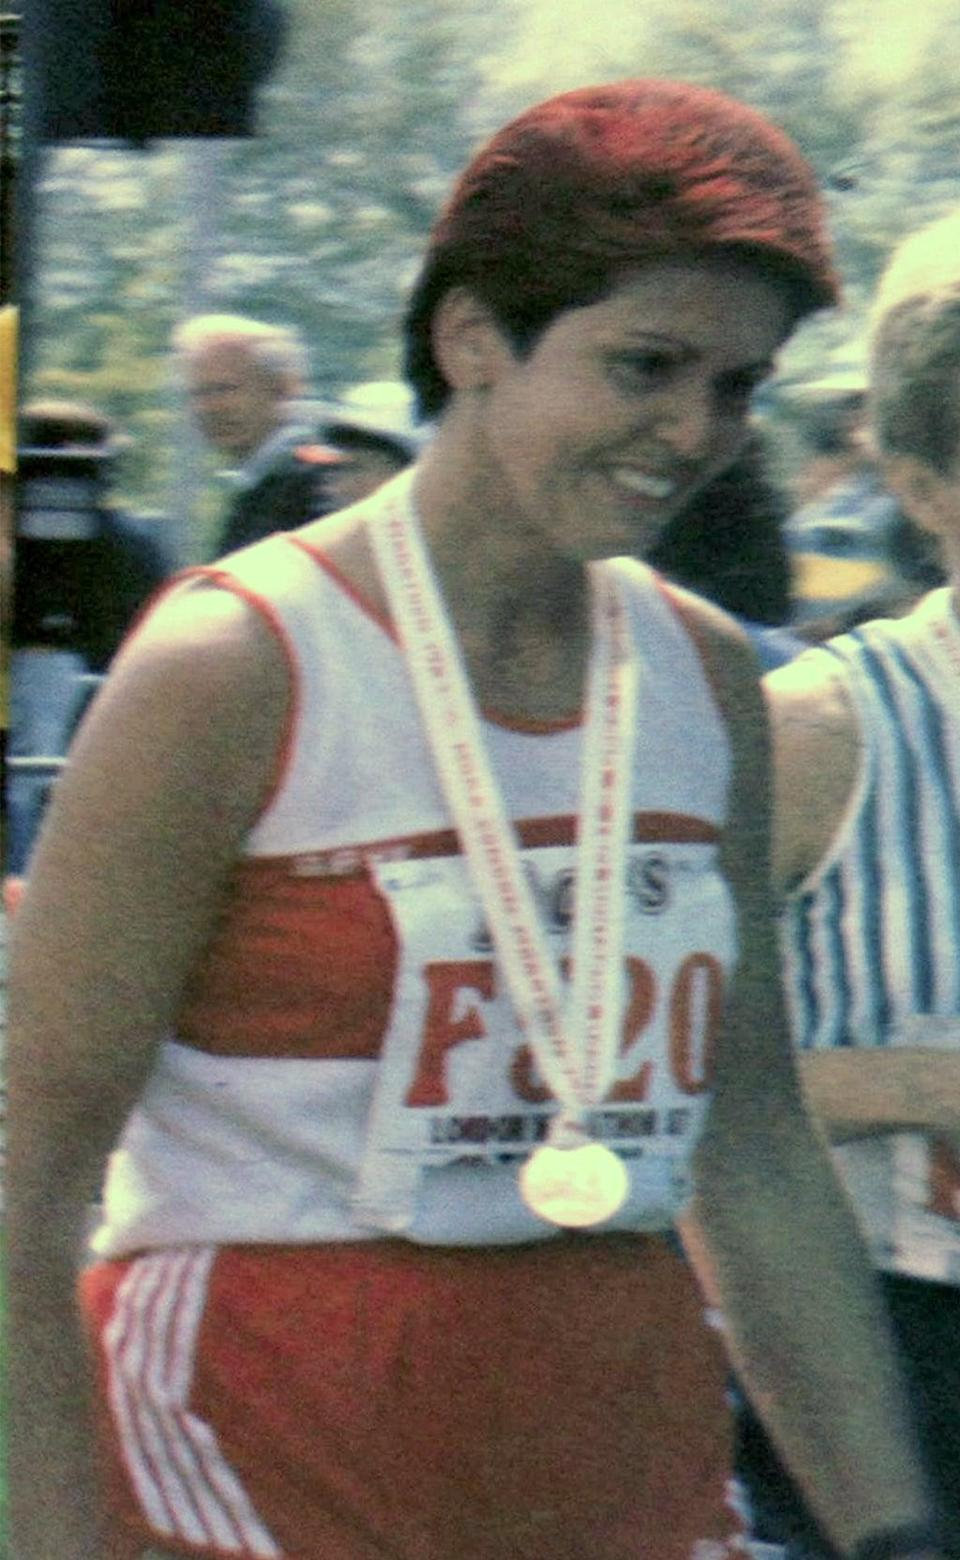 Jasmine Flatters at the end of 1987 London Marathon when she sprayed her hair red to get the crowd's attention (Jasmine Flatters/PA) (PA Media)